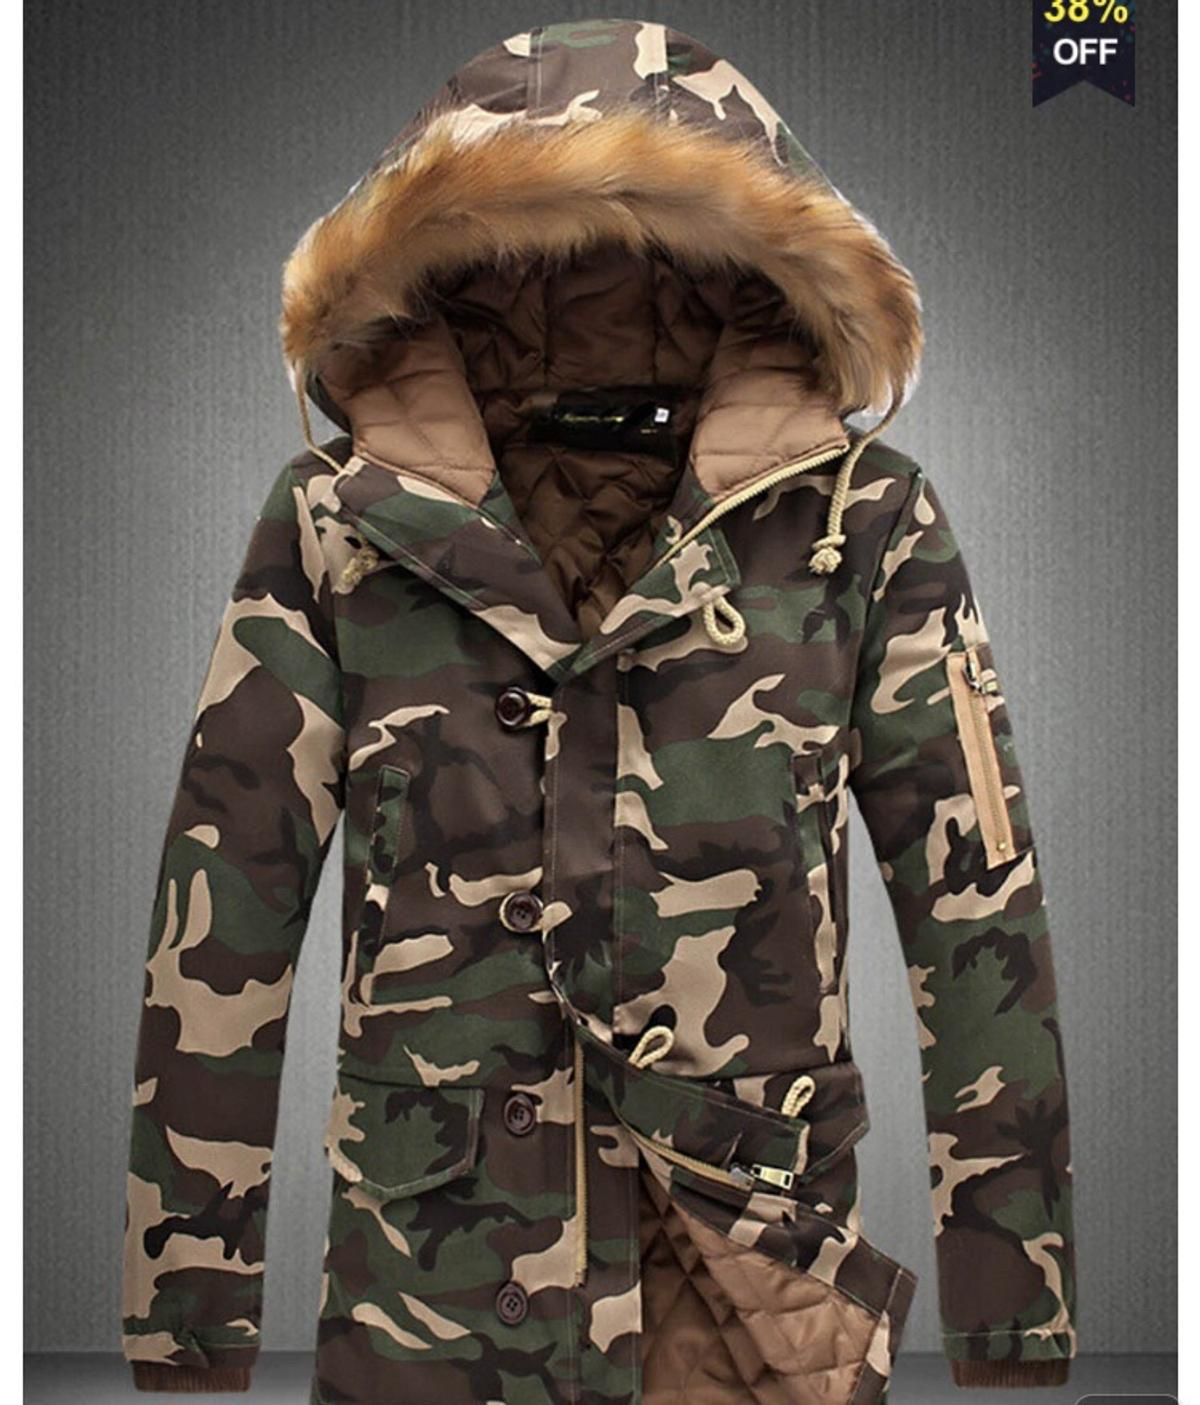 d39a3c8b42334 Camouflage winter coat in N1 London for £30.00 for sale - Shpock